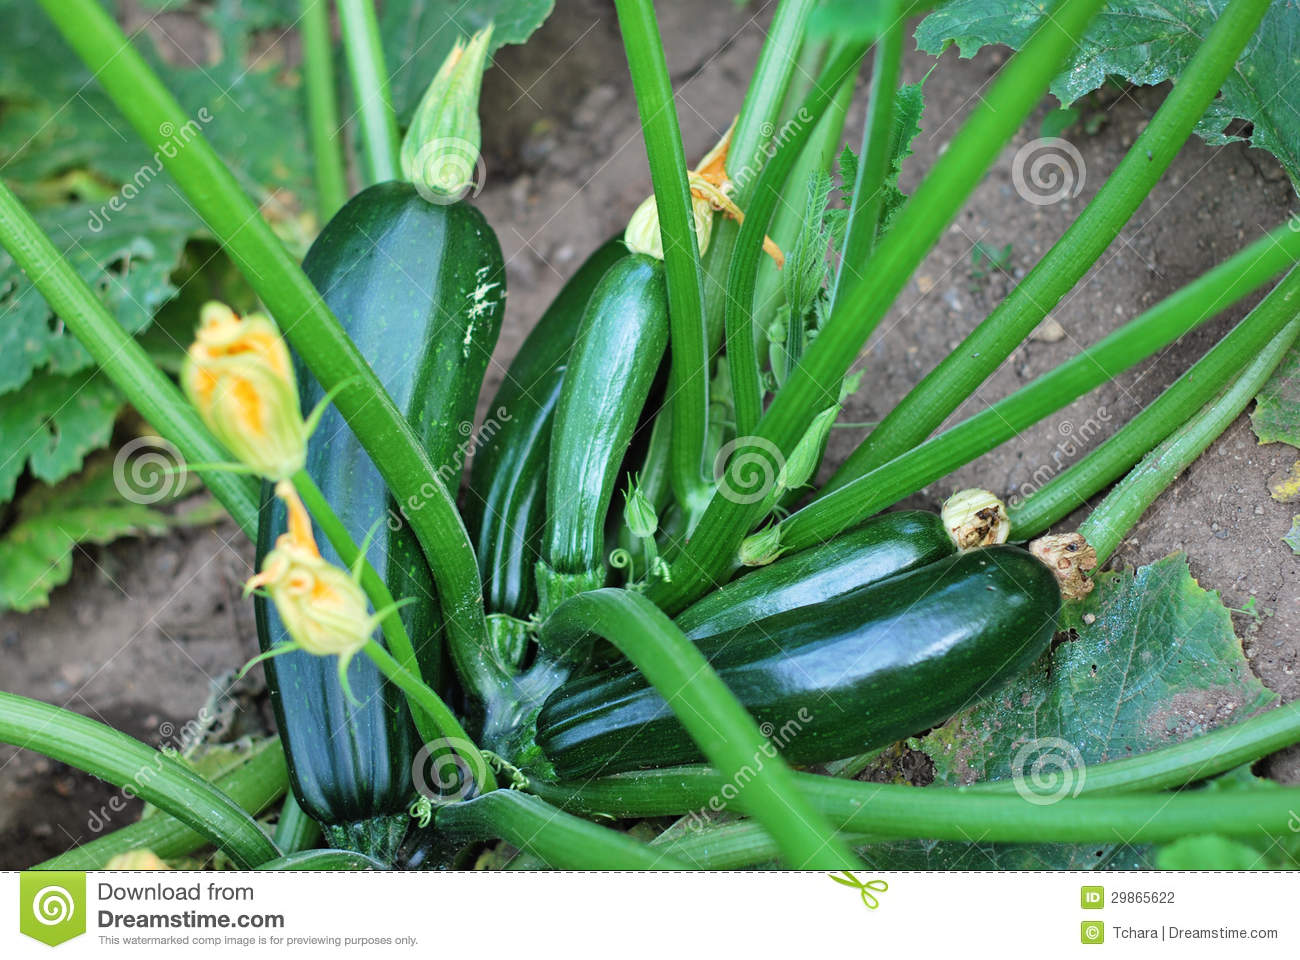 Zucchini Plant With Flowers And Fruits Stock Photo.